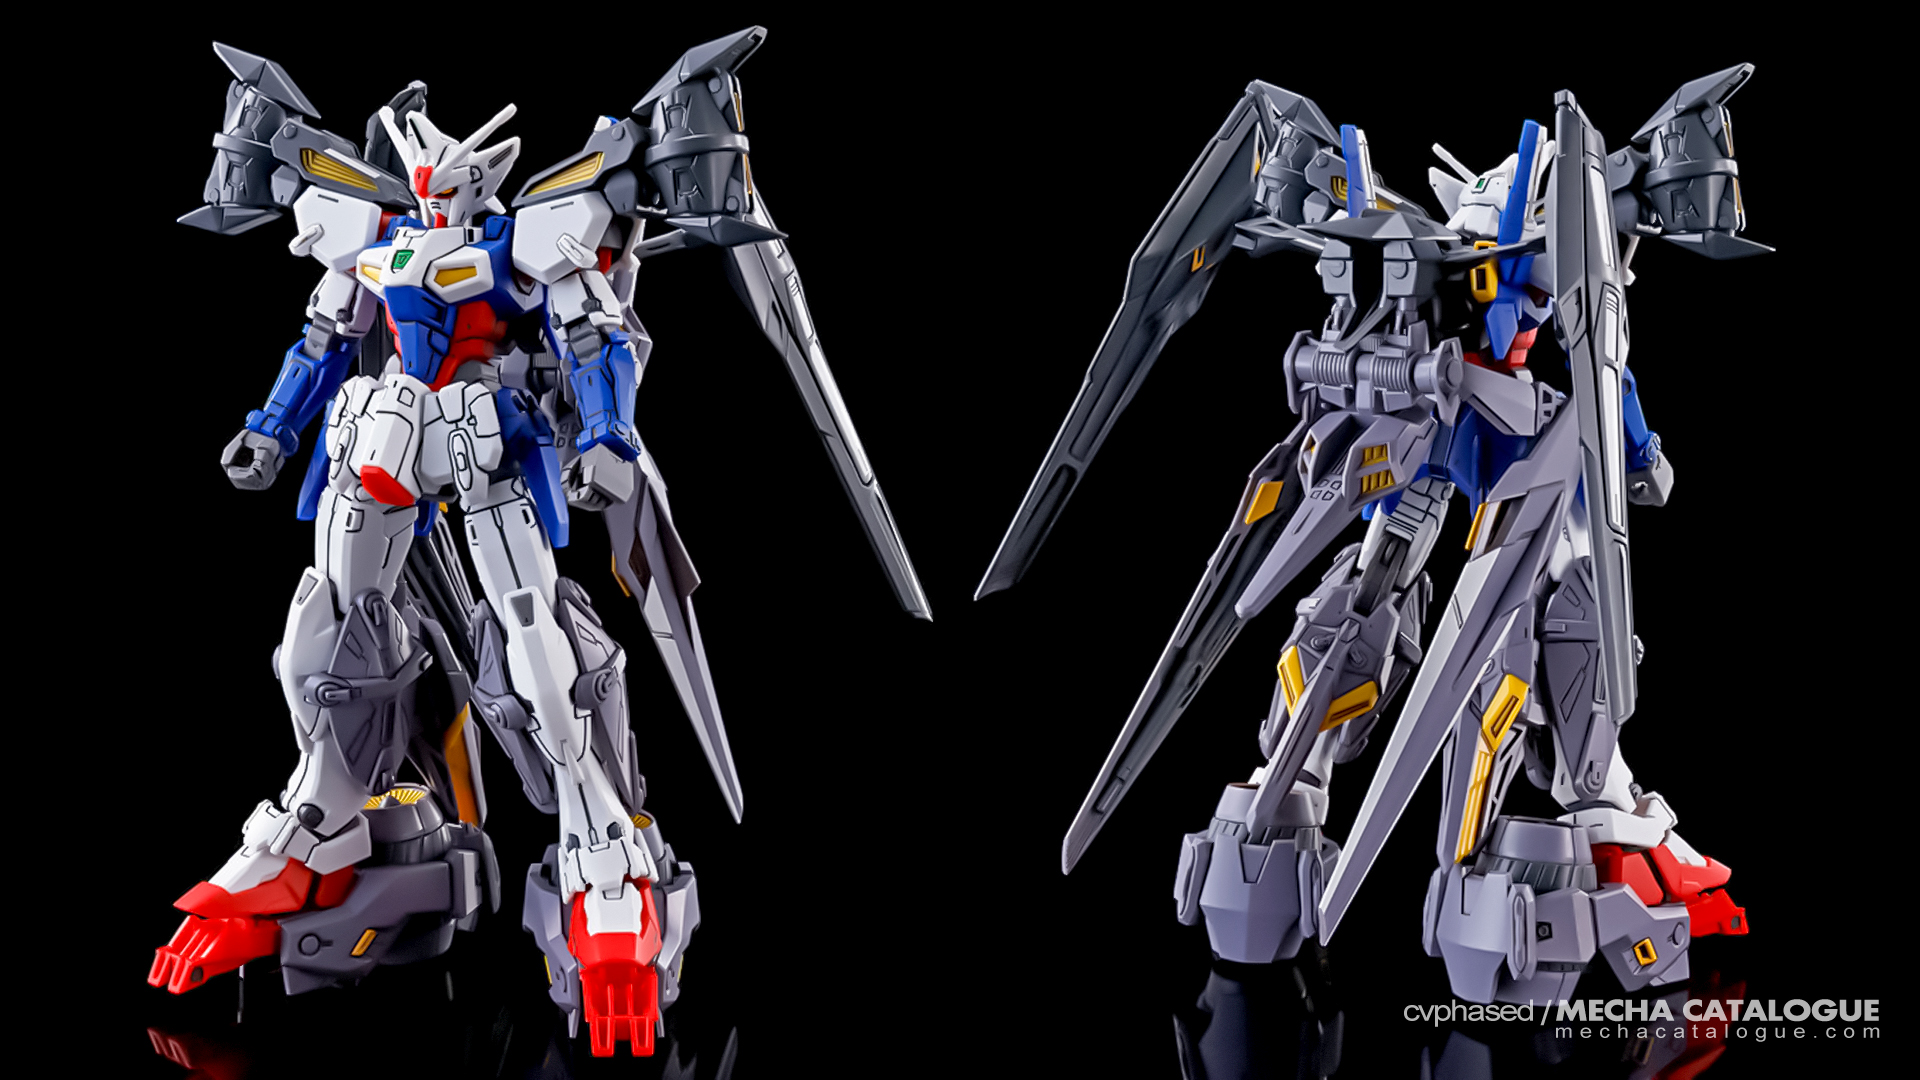 G-UNIT Re:OPERATION! HGAC Gundam Geminass 01 Assault Booster & High Mobility Unit Expansion Set